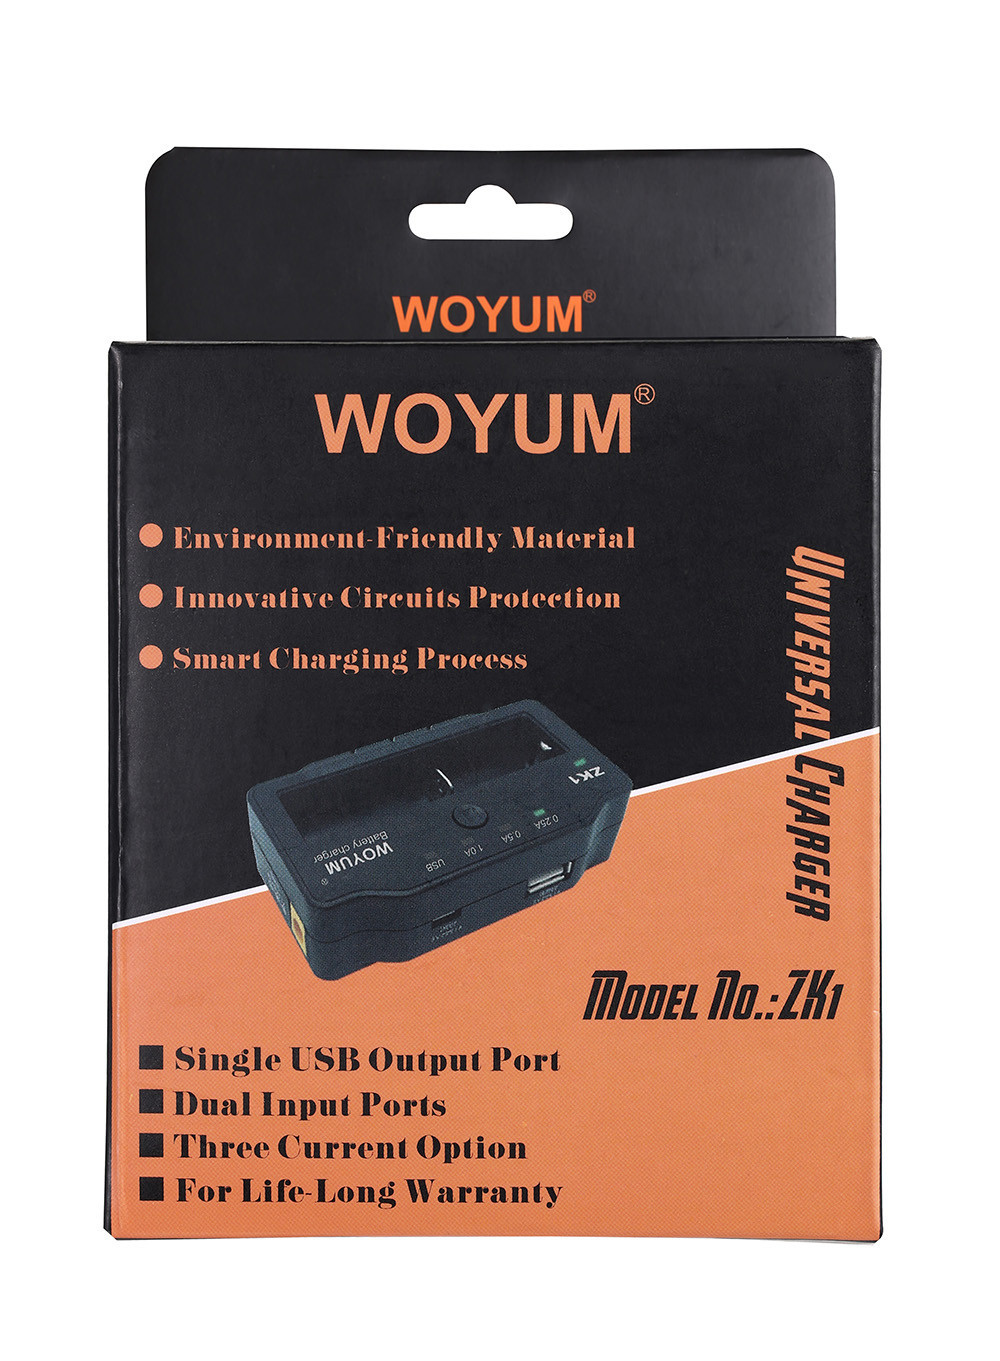 Woyum Custom battery charger reviews manufacturers for Li-ion